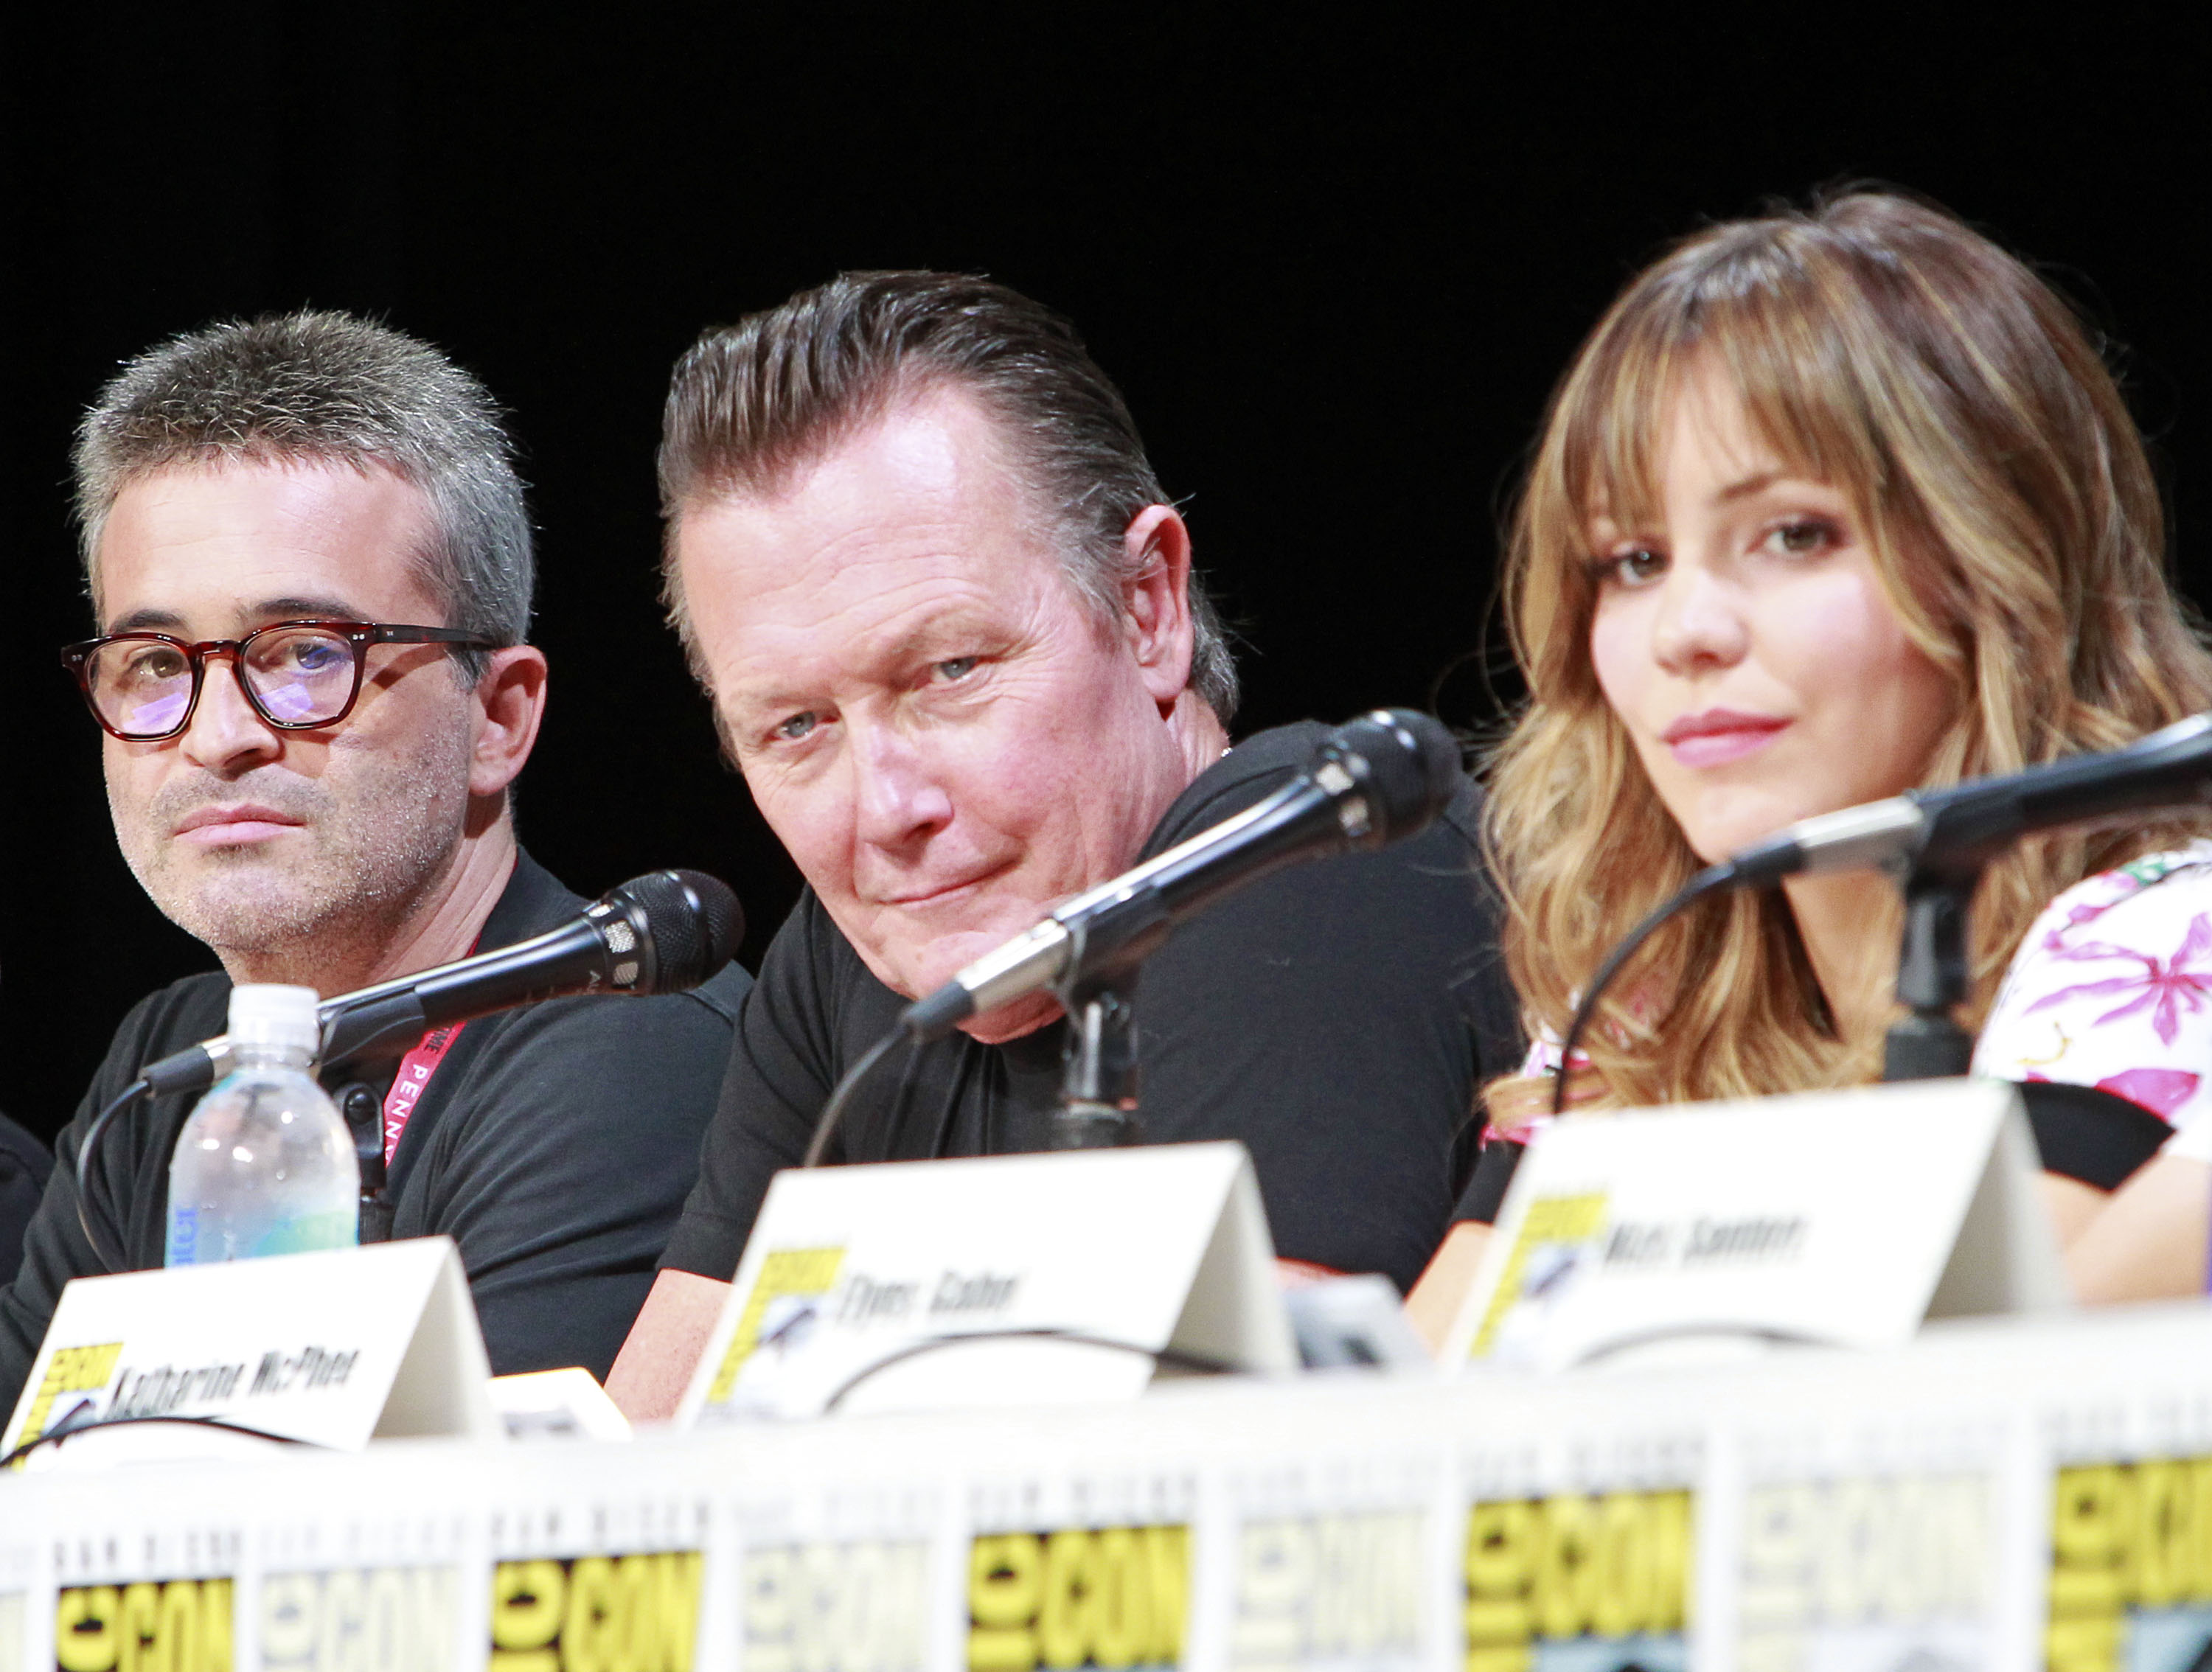 Executive Producer Robert Orci, Robert Patrick and Katharine McPhee Chat with the Fans